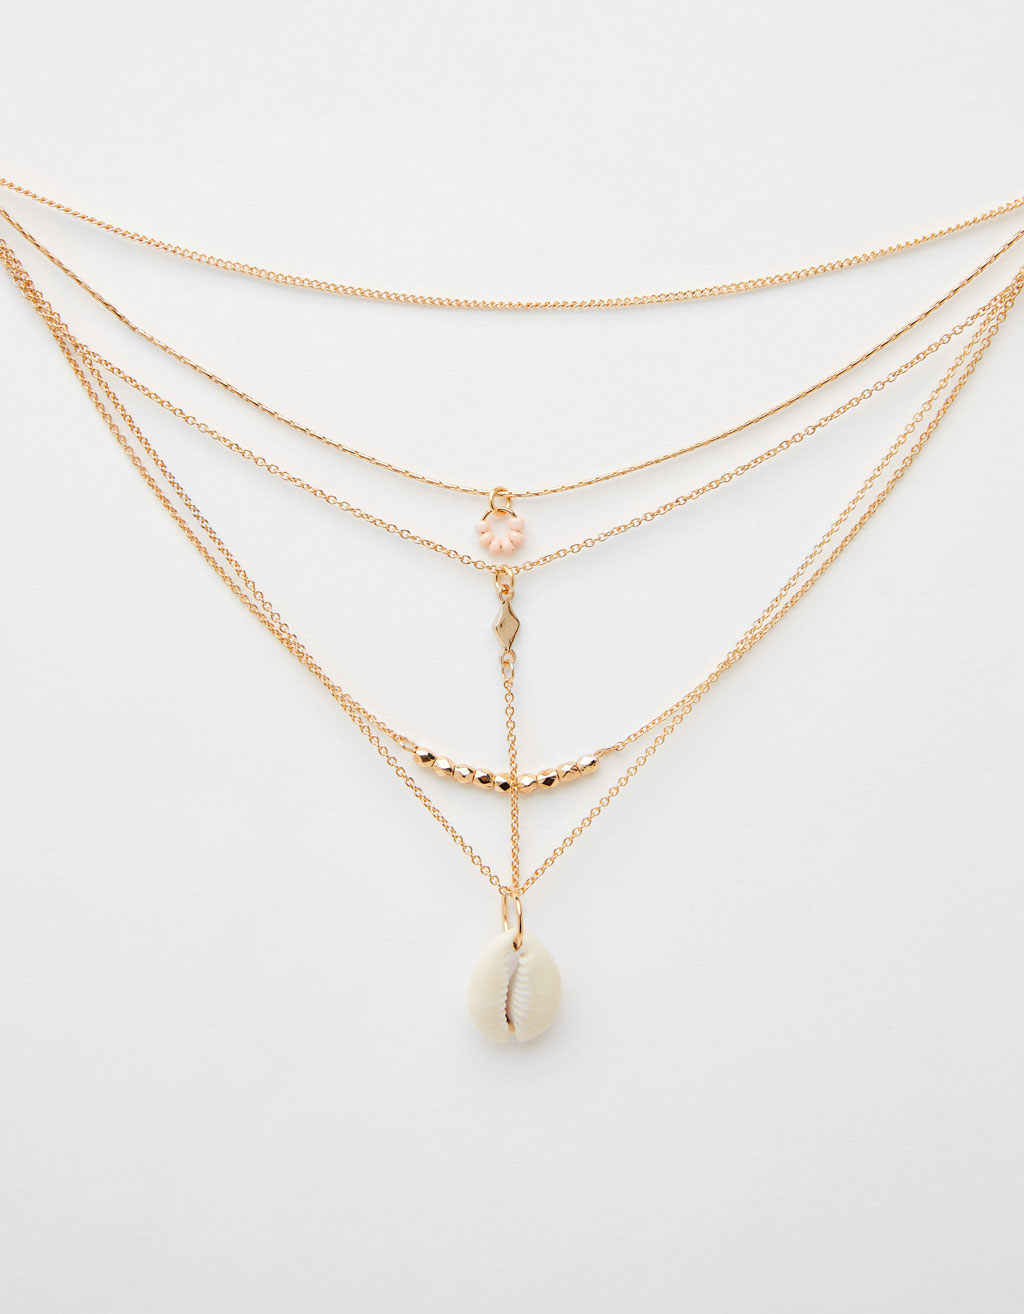 Multi-strand chain necklace with seashell pendant